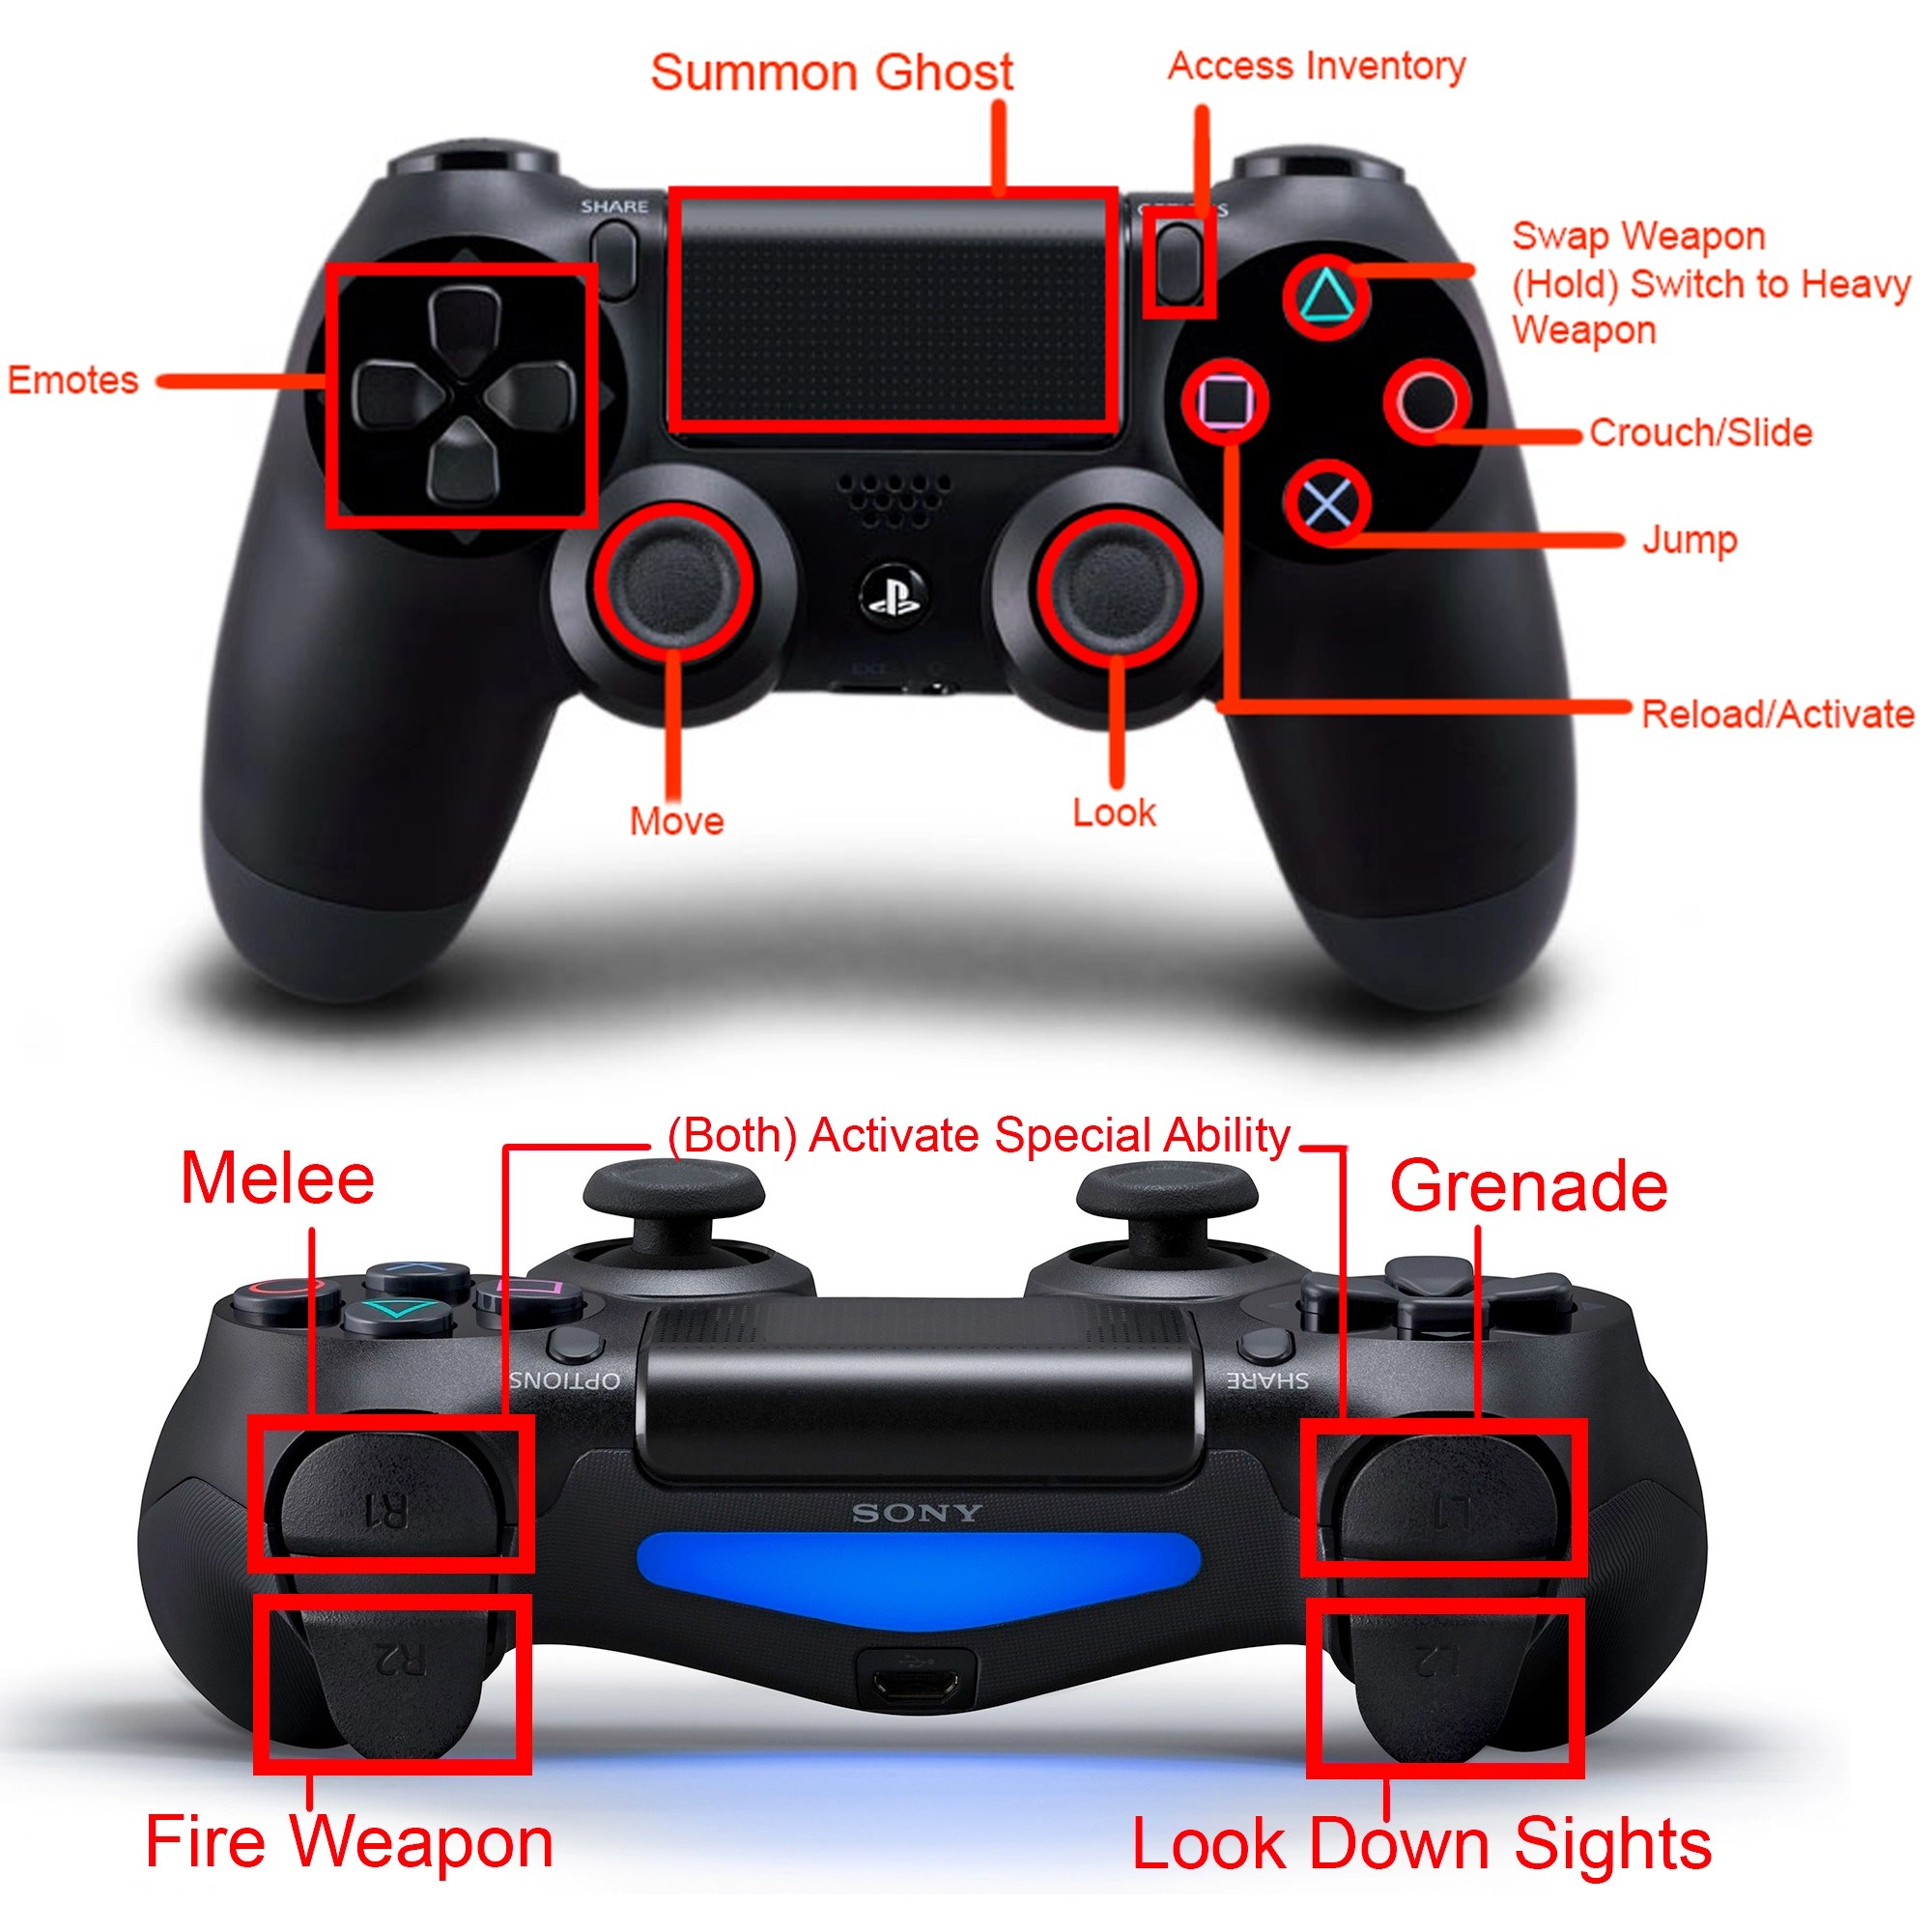 diagram of playstation 3 crossover wiring car audio new destiny info ps4 lead platform accusation